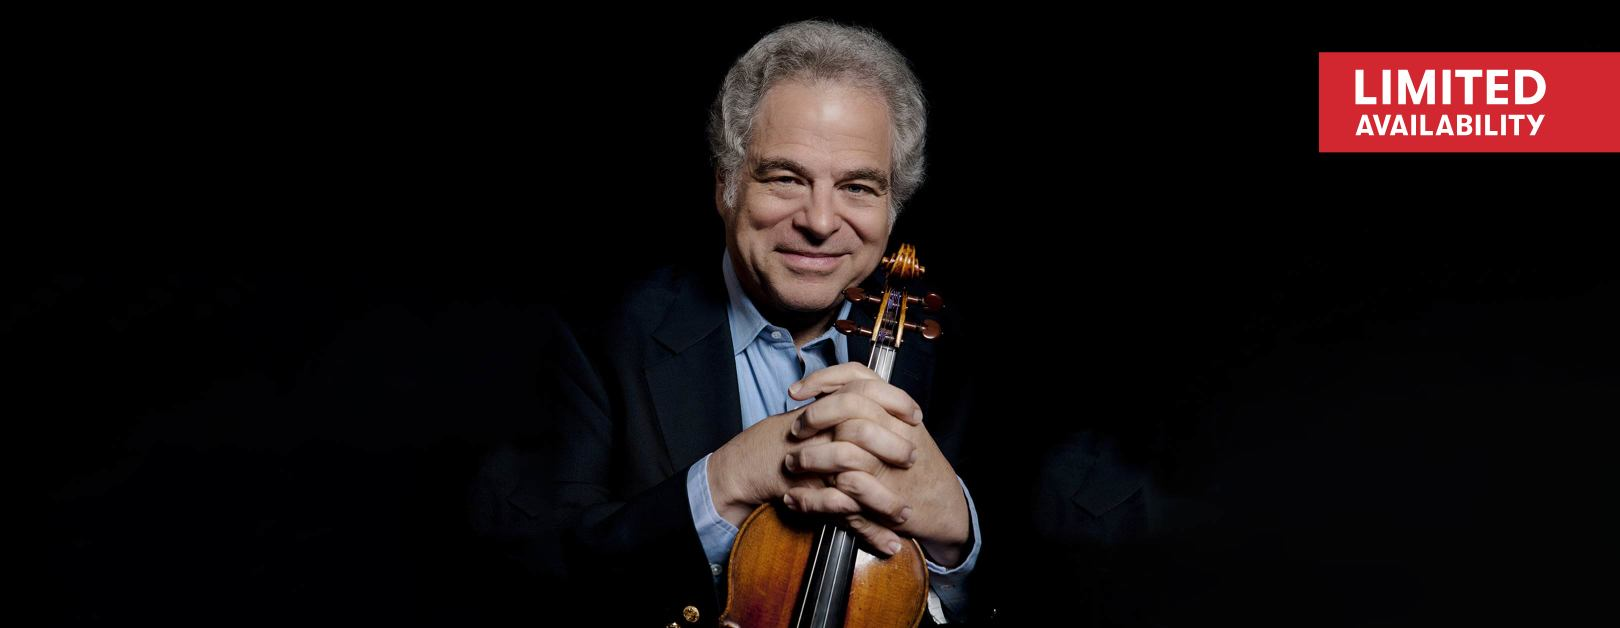 New York's Orchestra Is Back: A Gala Evening with Itzhak Perlman